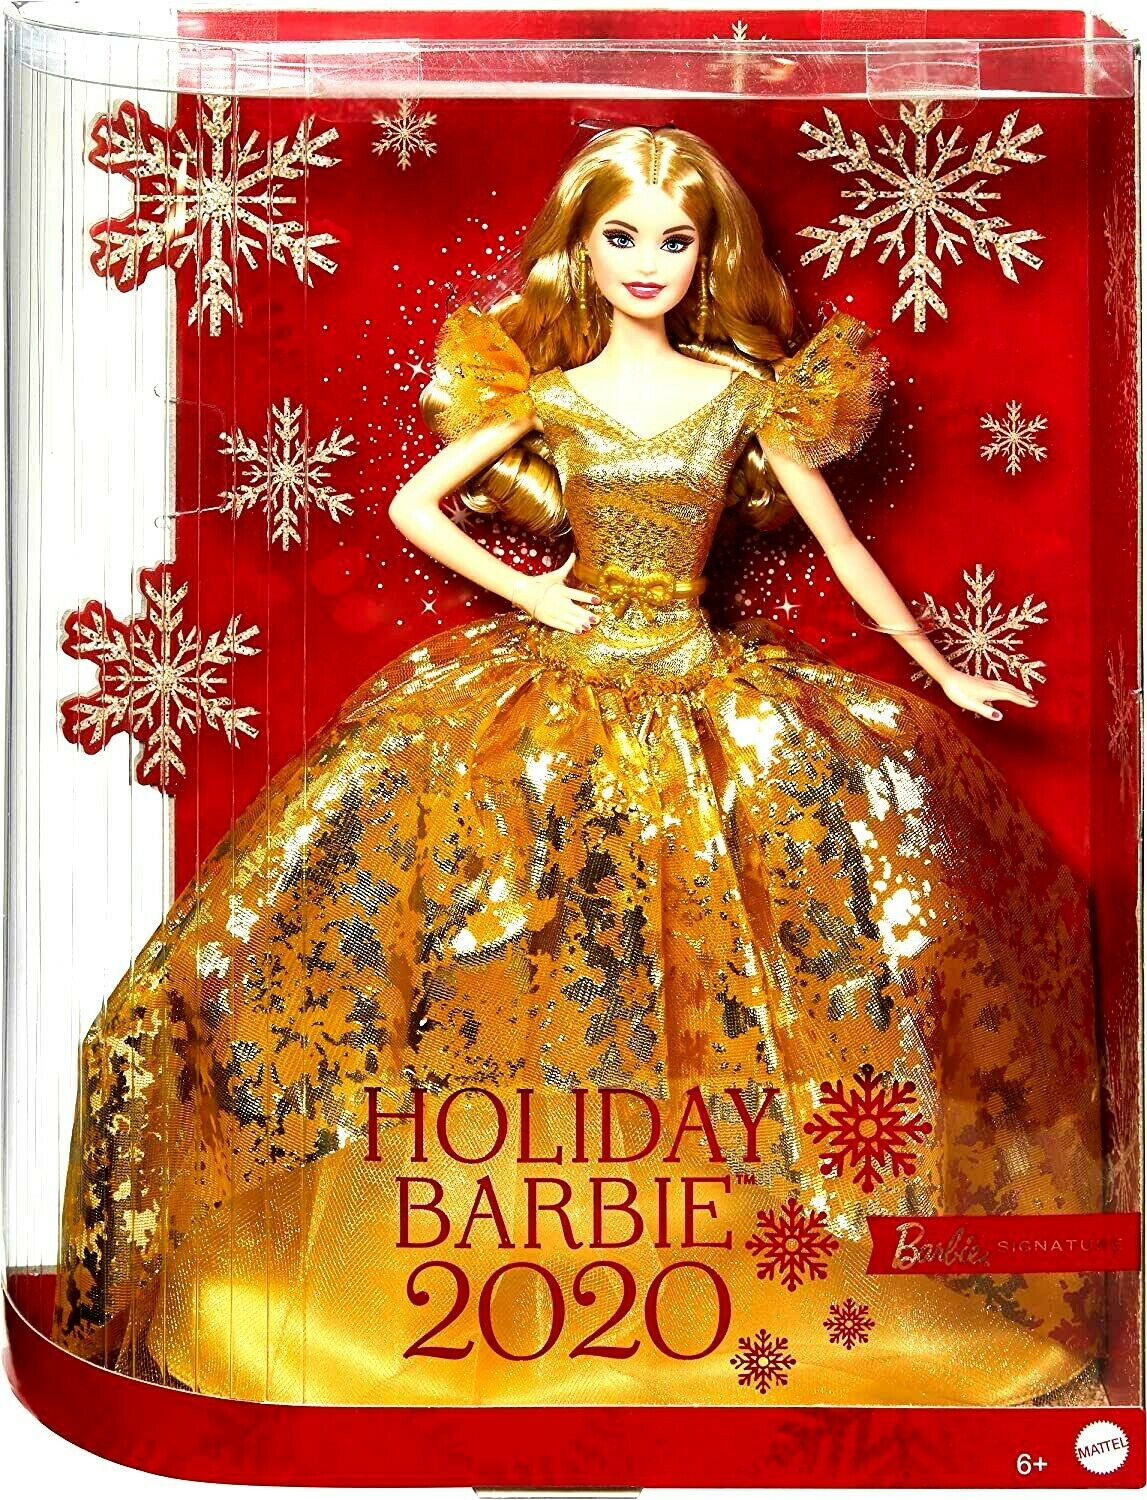 Barbie Signature 2020 Holiday Barbie Doll 12-inch Blonde Long Hair In Golden  - $49.33